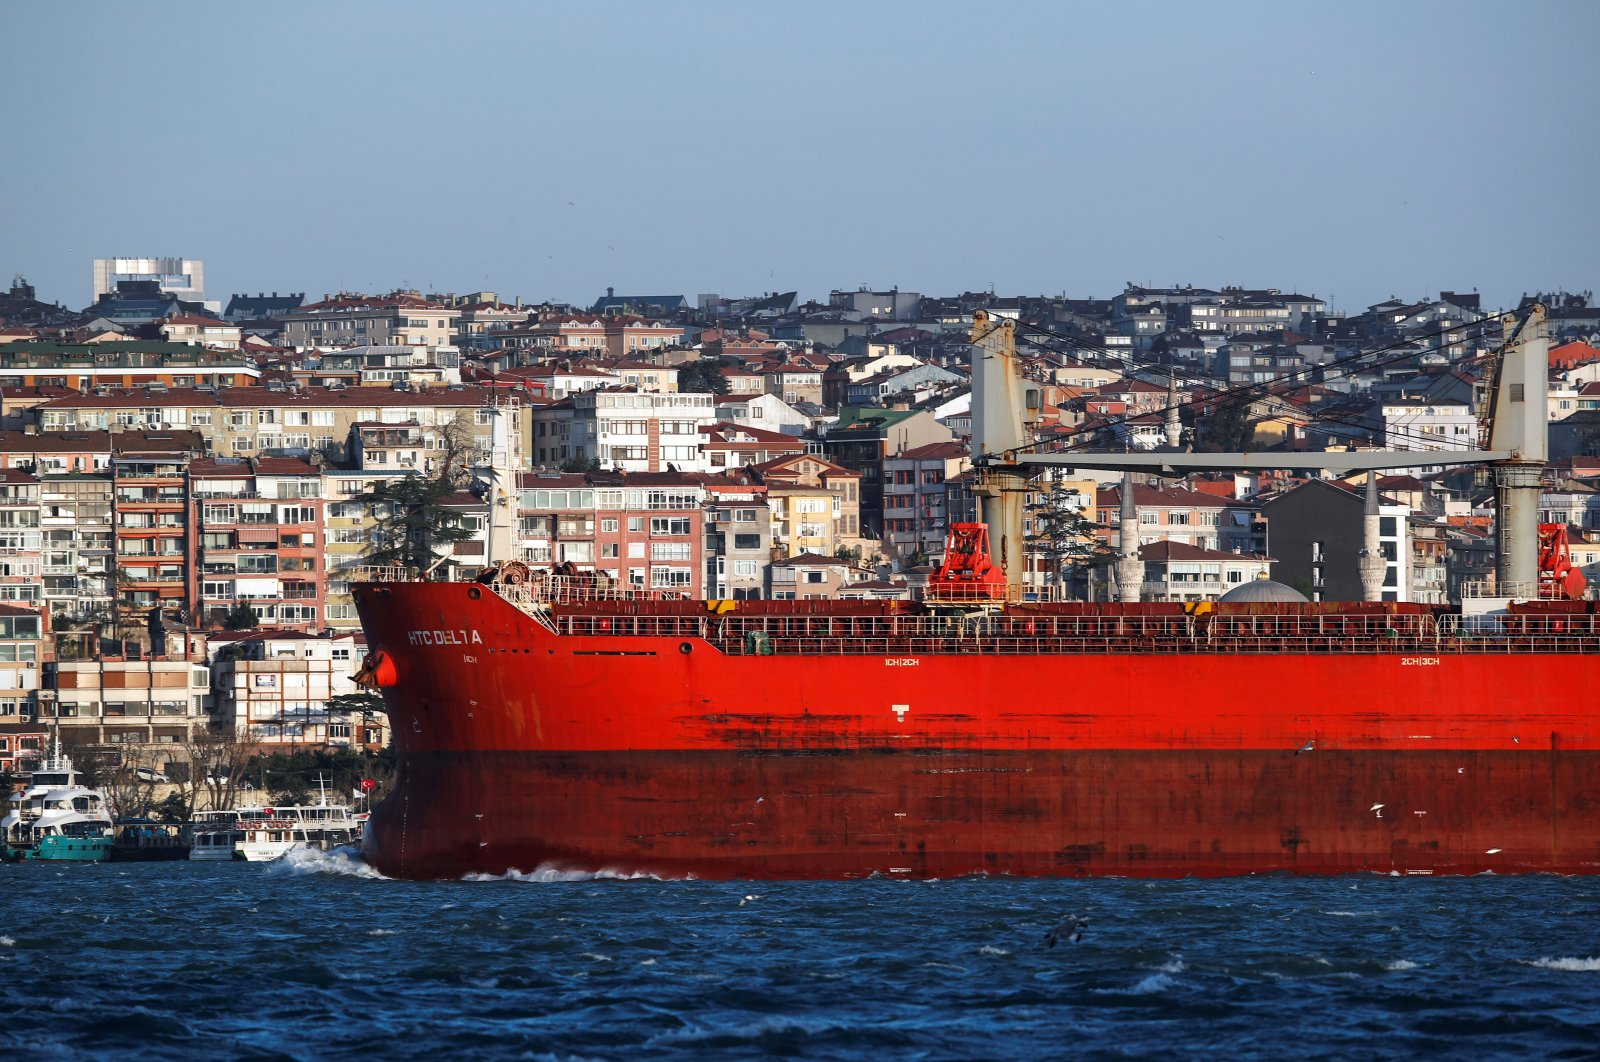 A commercial vessel sails through the Bosporus, on its way to the Black Sea, in Istanbul, Turkey, April 7, 2020. (Reuters Photo)